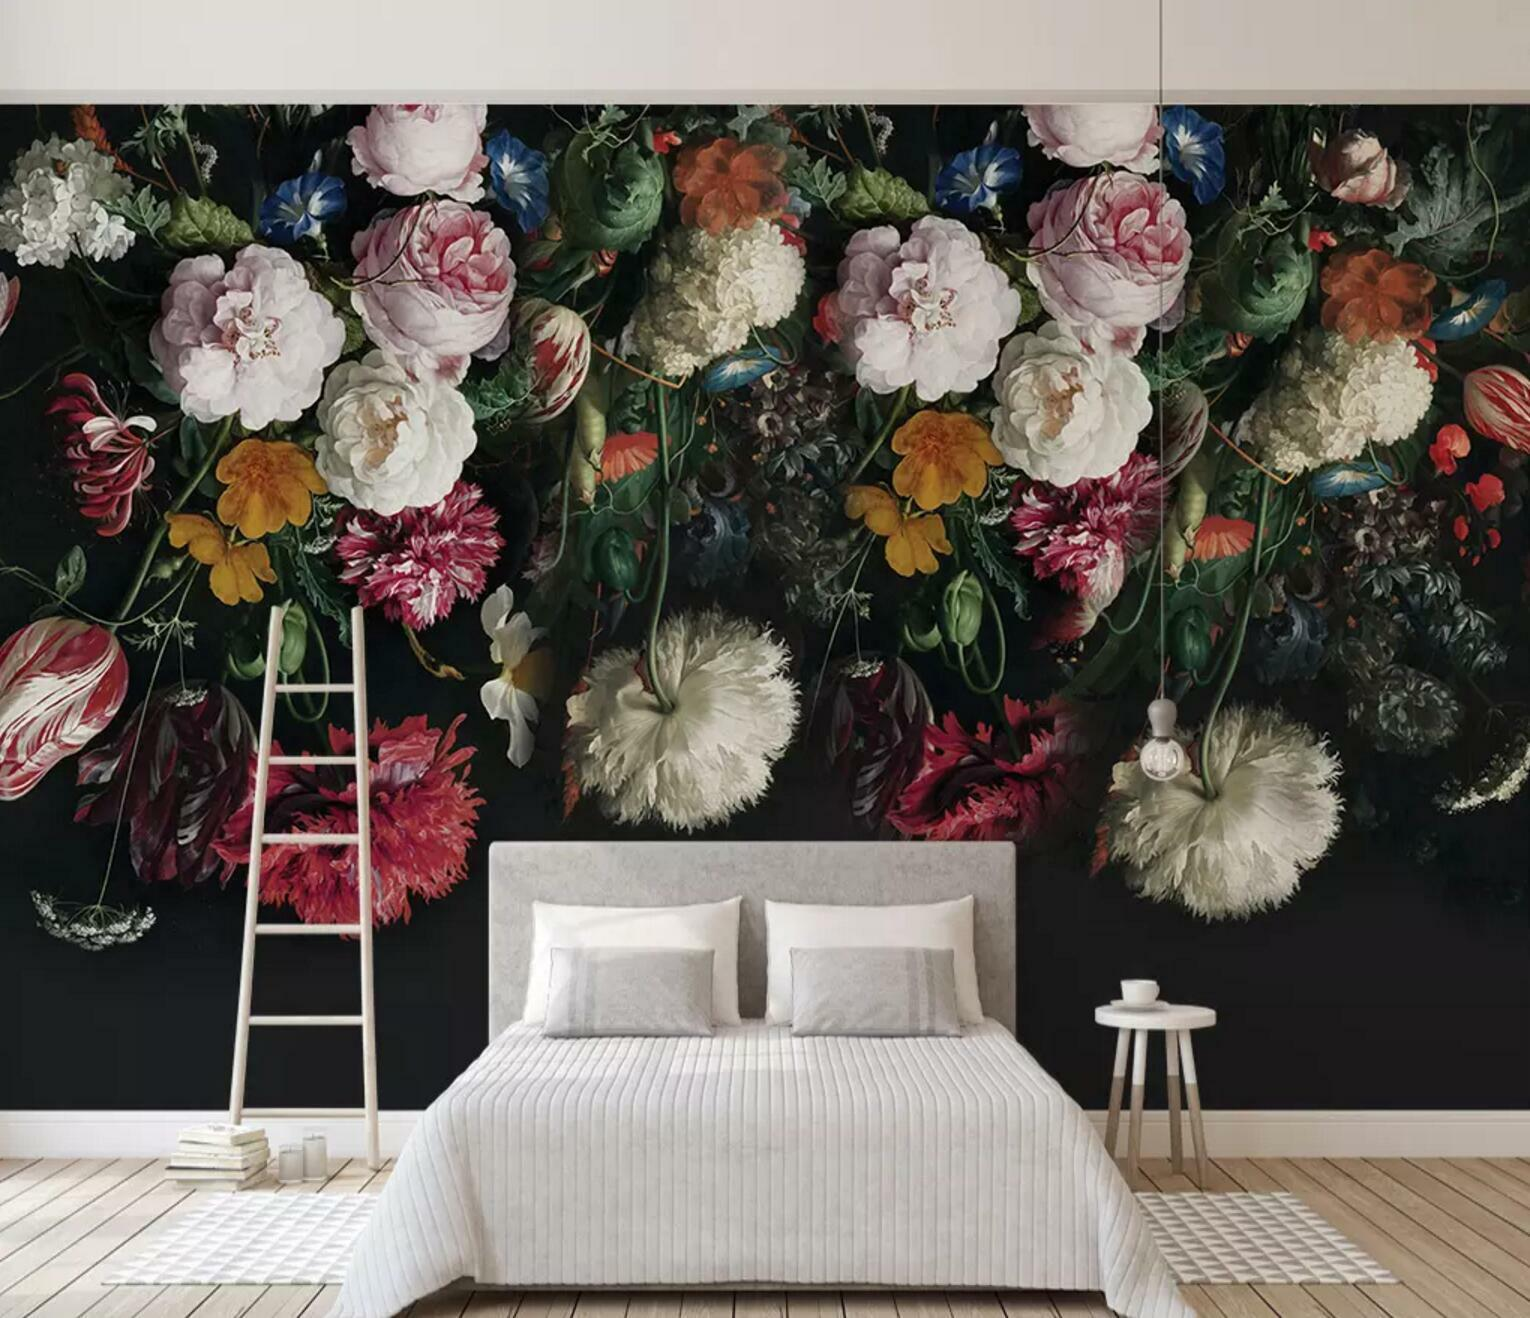 3D Flowers Paint 4 Wall Paper Exclusive MXY Wallpaper Mural Decal Indoor wall AJ